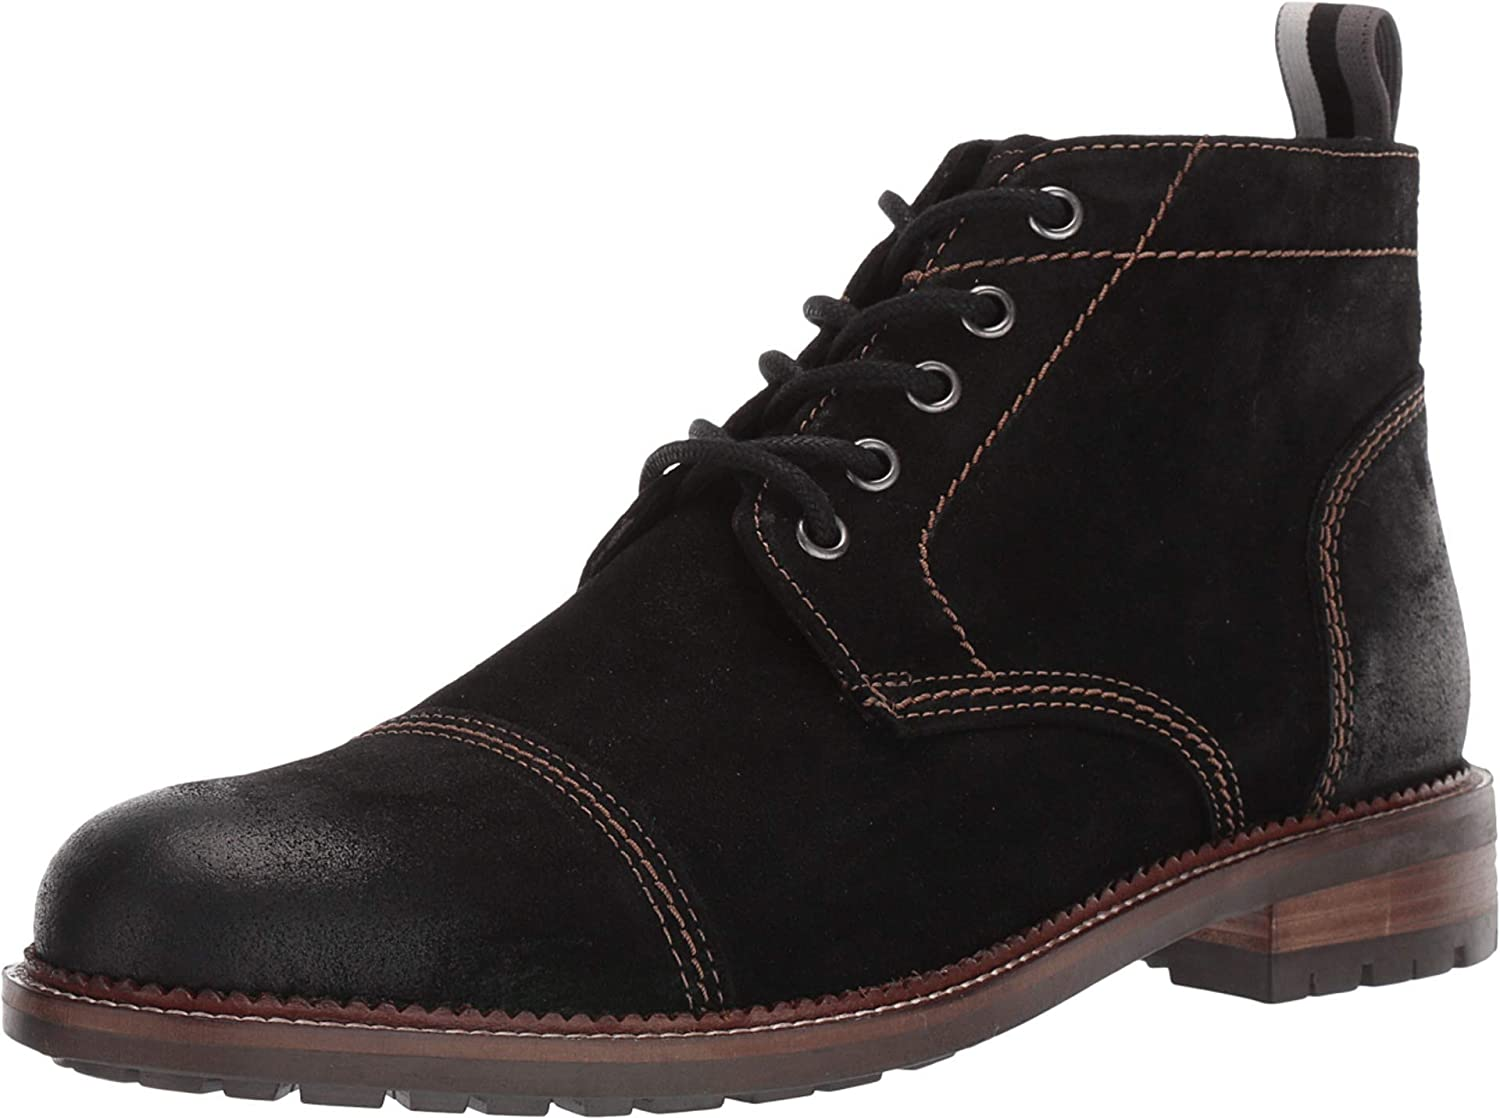 Dr. Scholl's 25% OFF Shoes Popular Men's Boot Airborne Oxford